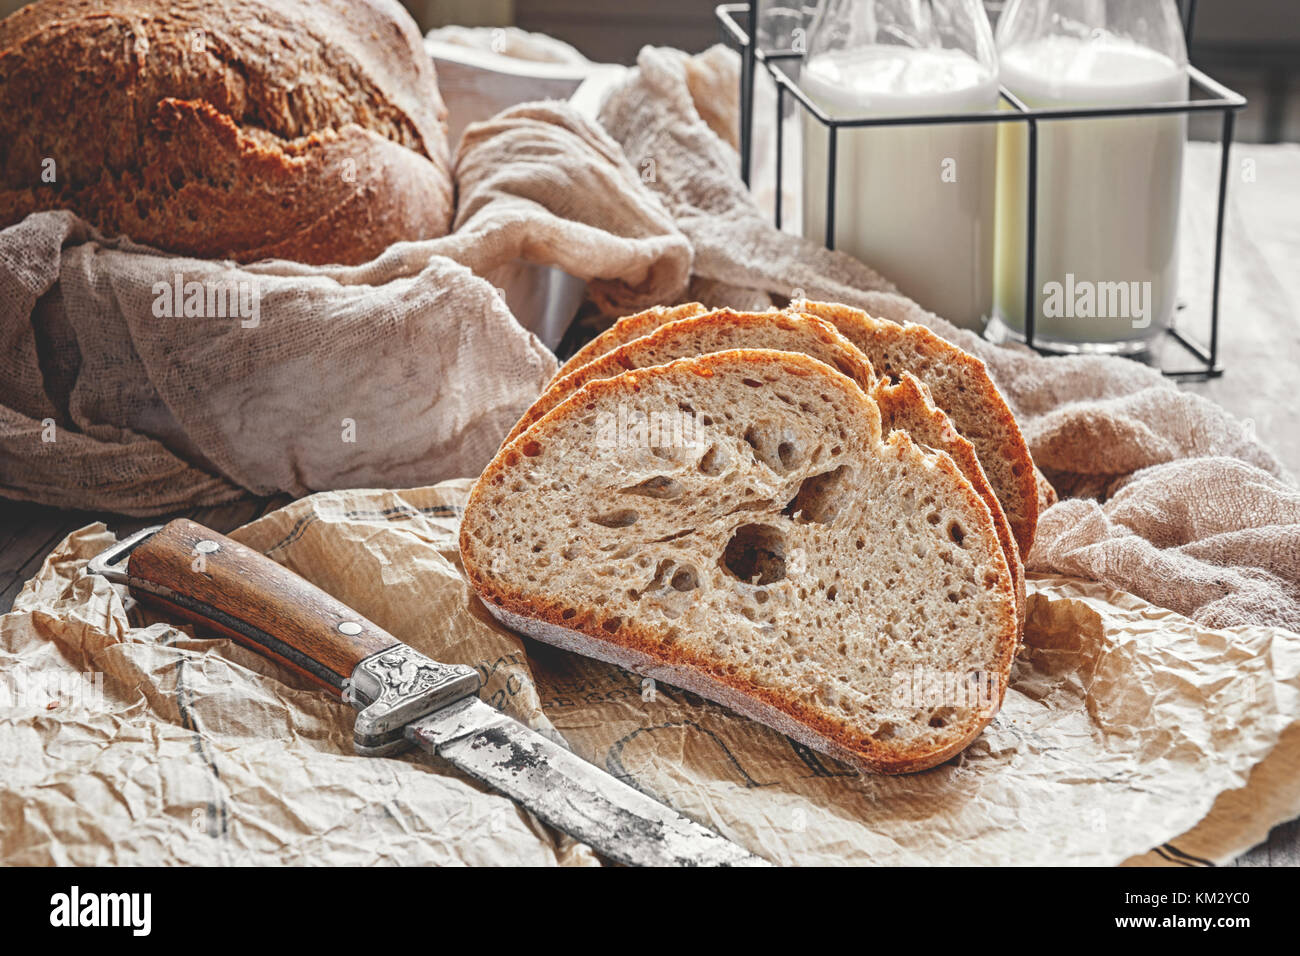 A beautiful loaf of sourdough bread from white wheat on a plate on a linen edge. Homemade pastries. Stock Photo